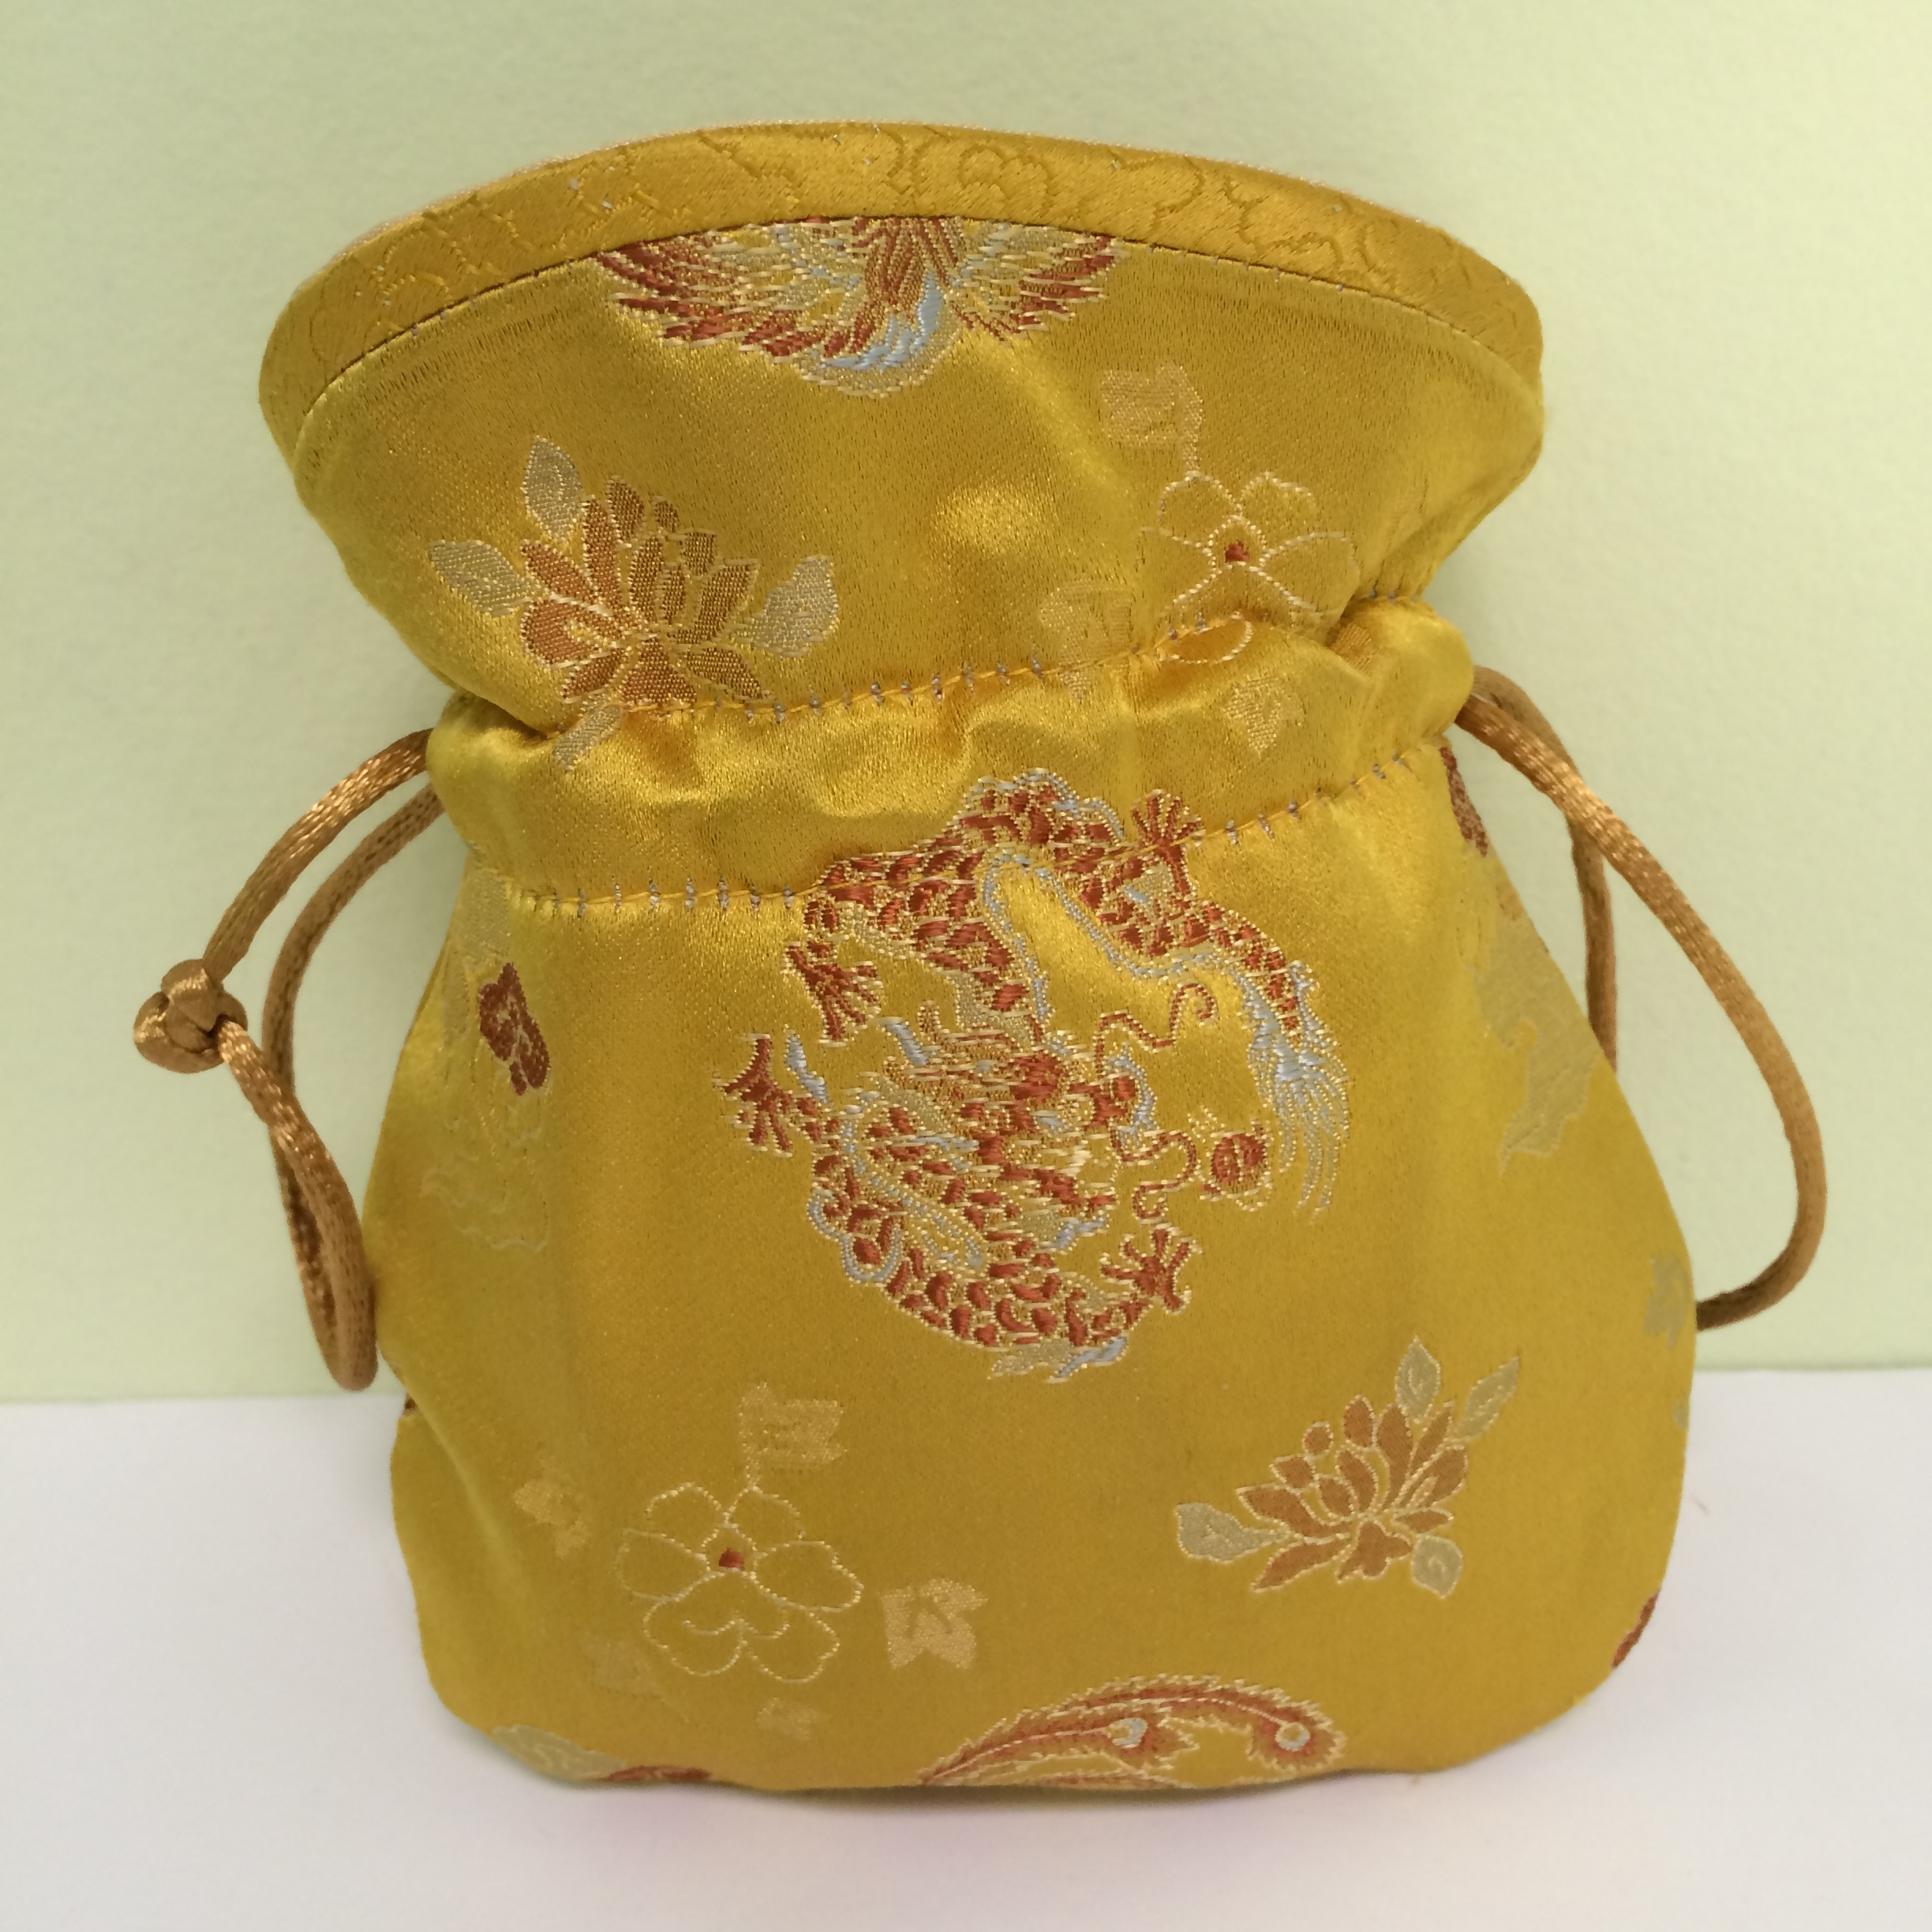 Chinese Embroidered Coin Purse, Gold